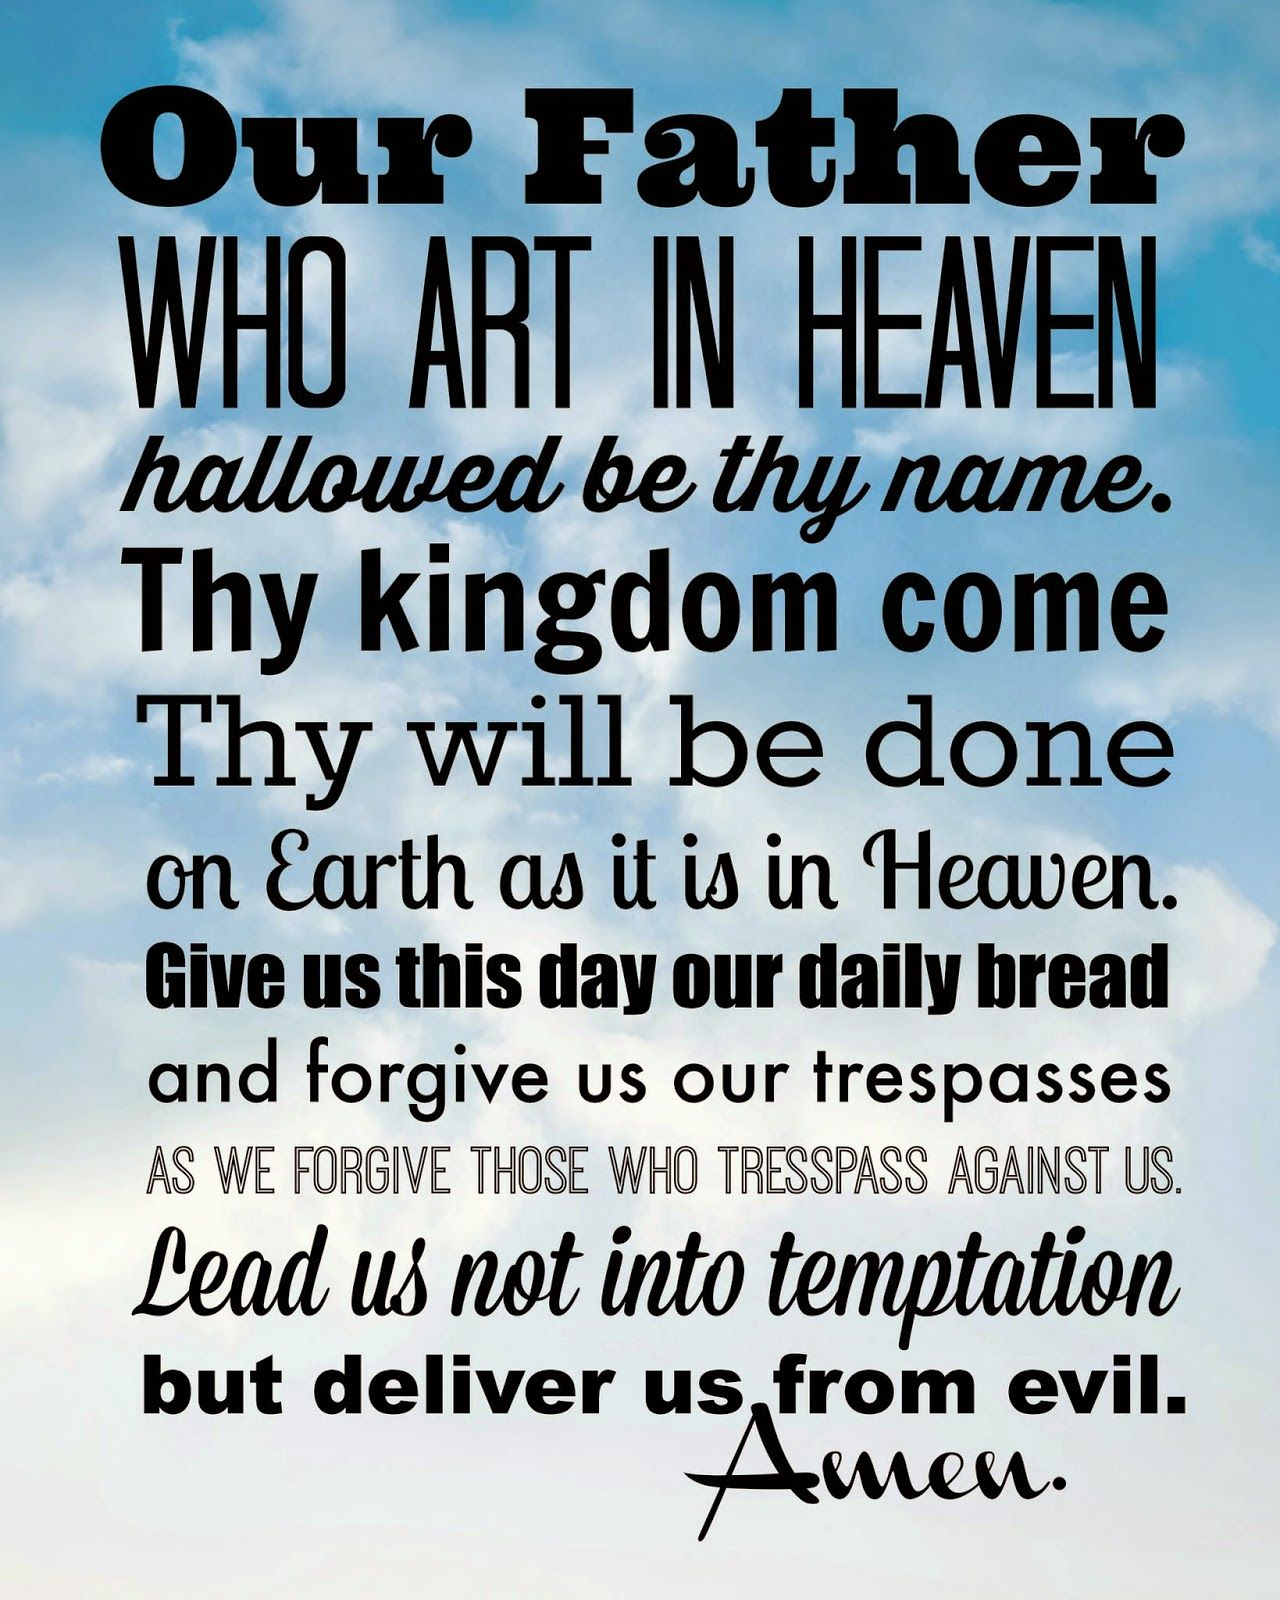 image about Printable Catholic Prayer Cards known as Inside Which there are 7 No cost Printable Prayers and therefore numerous